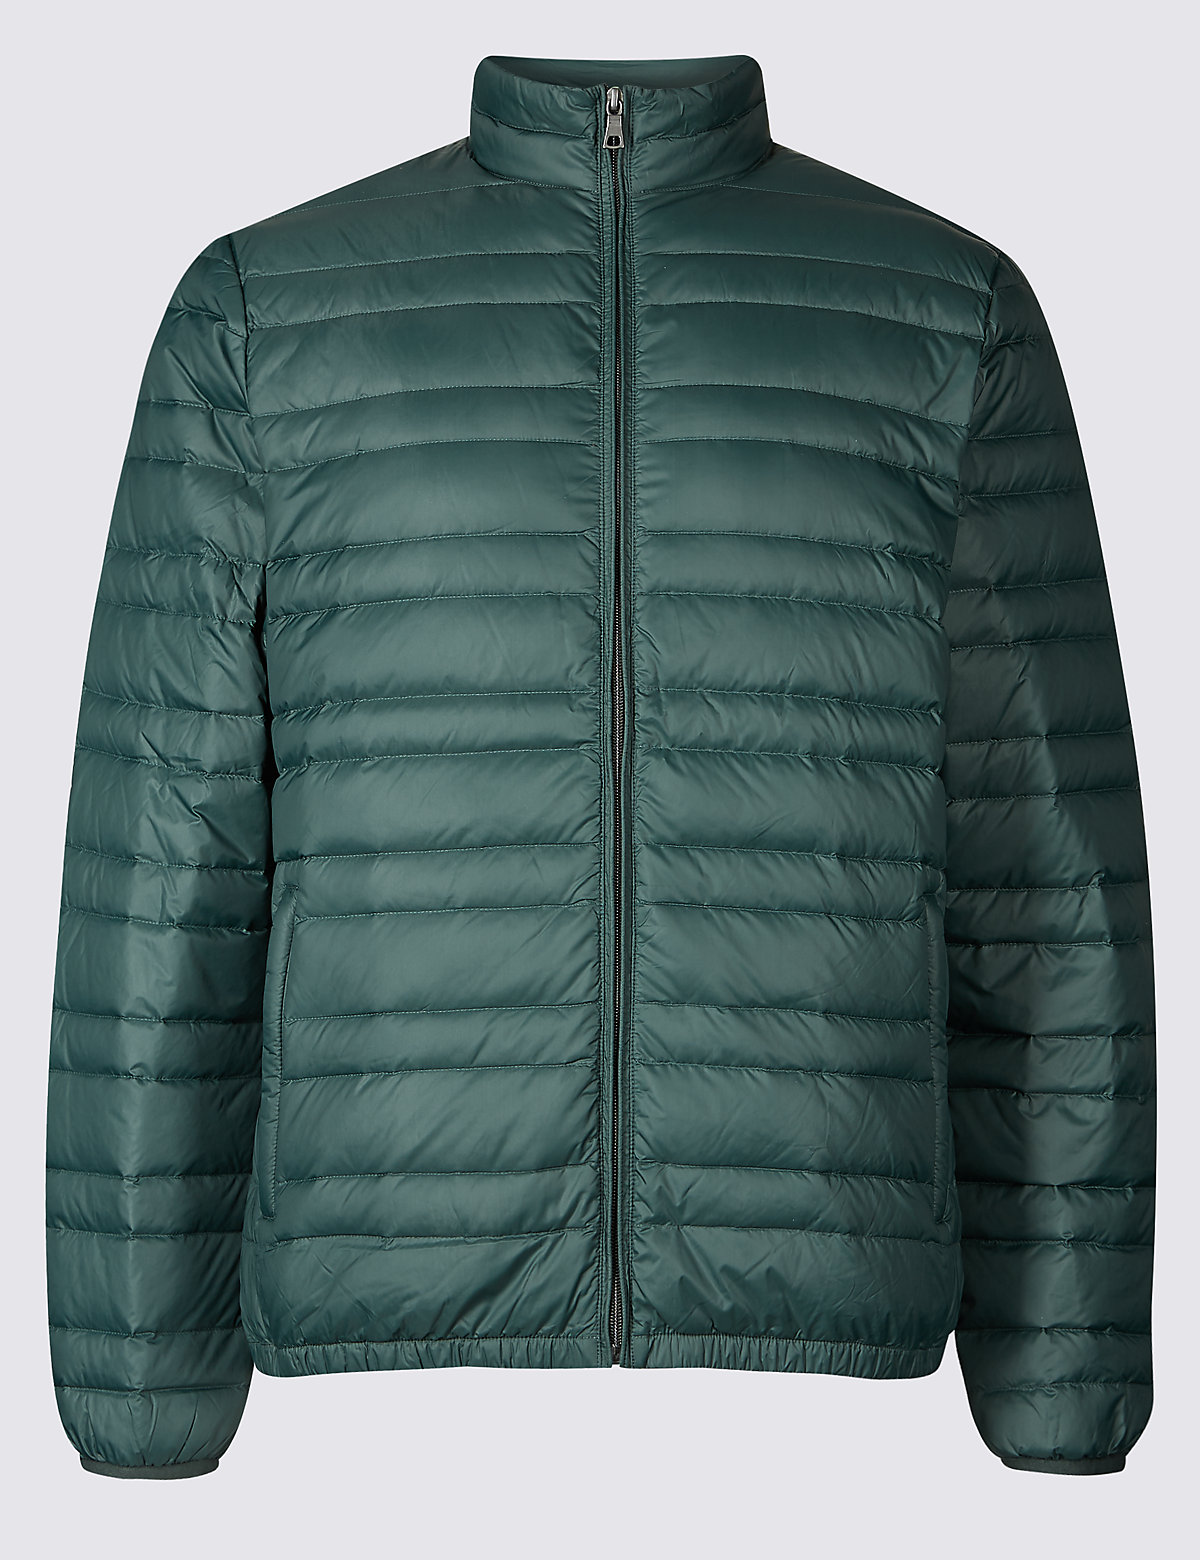 Marks & Spencer Green Down & Feather Jacket with Stormwear™